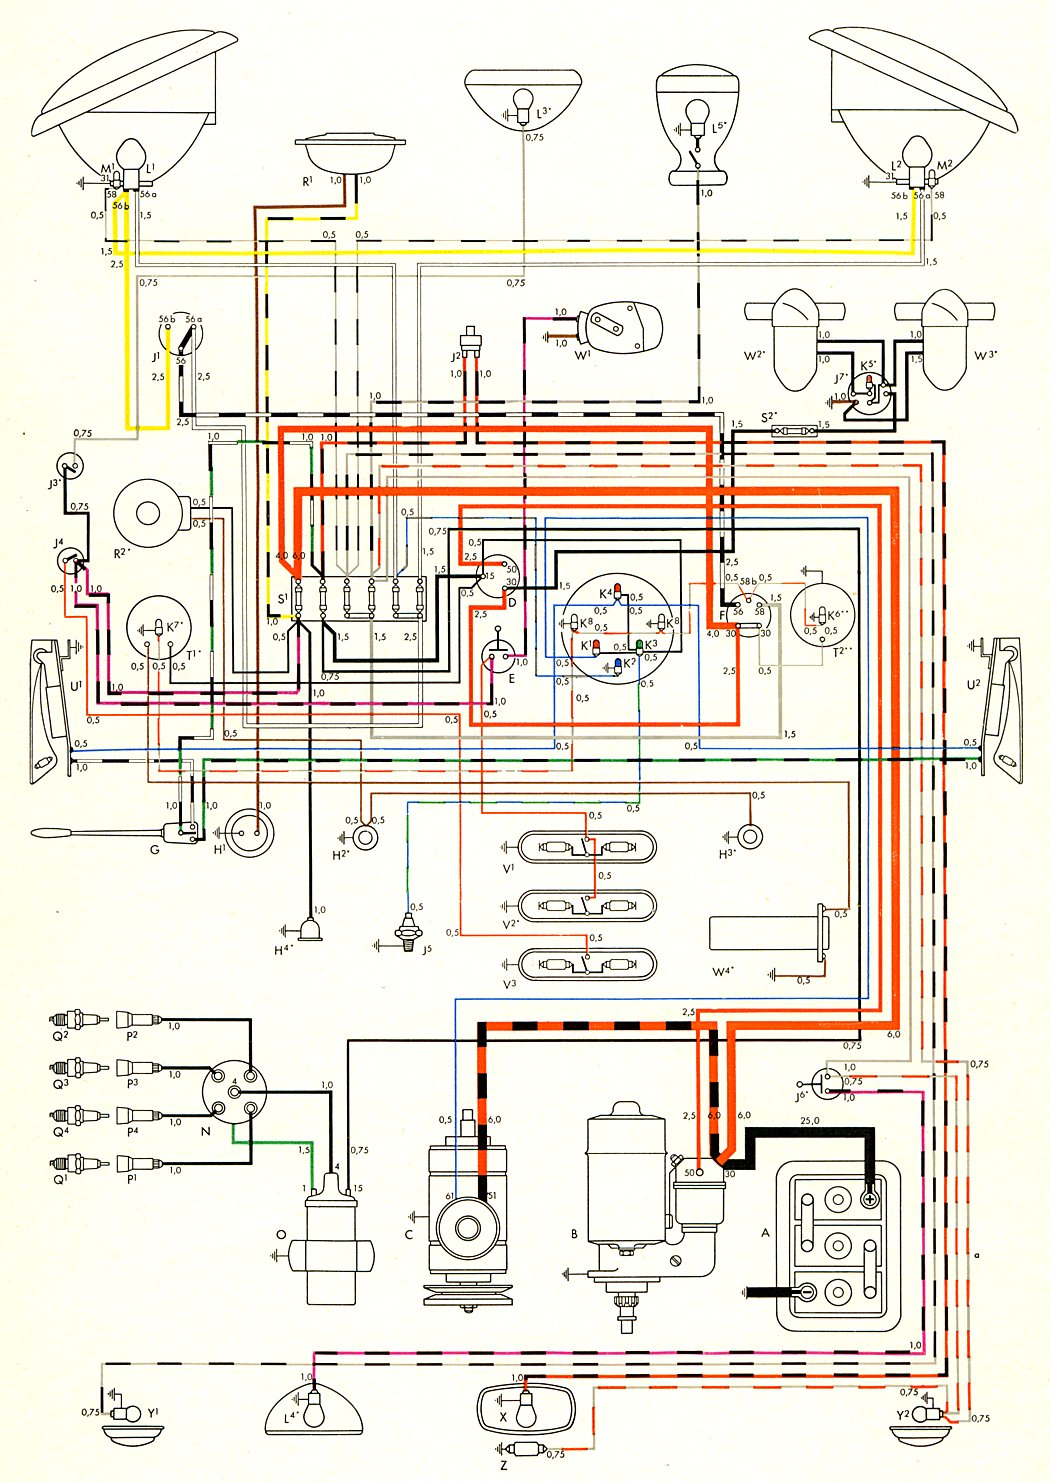 bus_nov57 thesamba com type 2 wiring diagrams Electrical Wiring Diagrams at alyssarenee.co